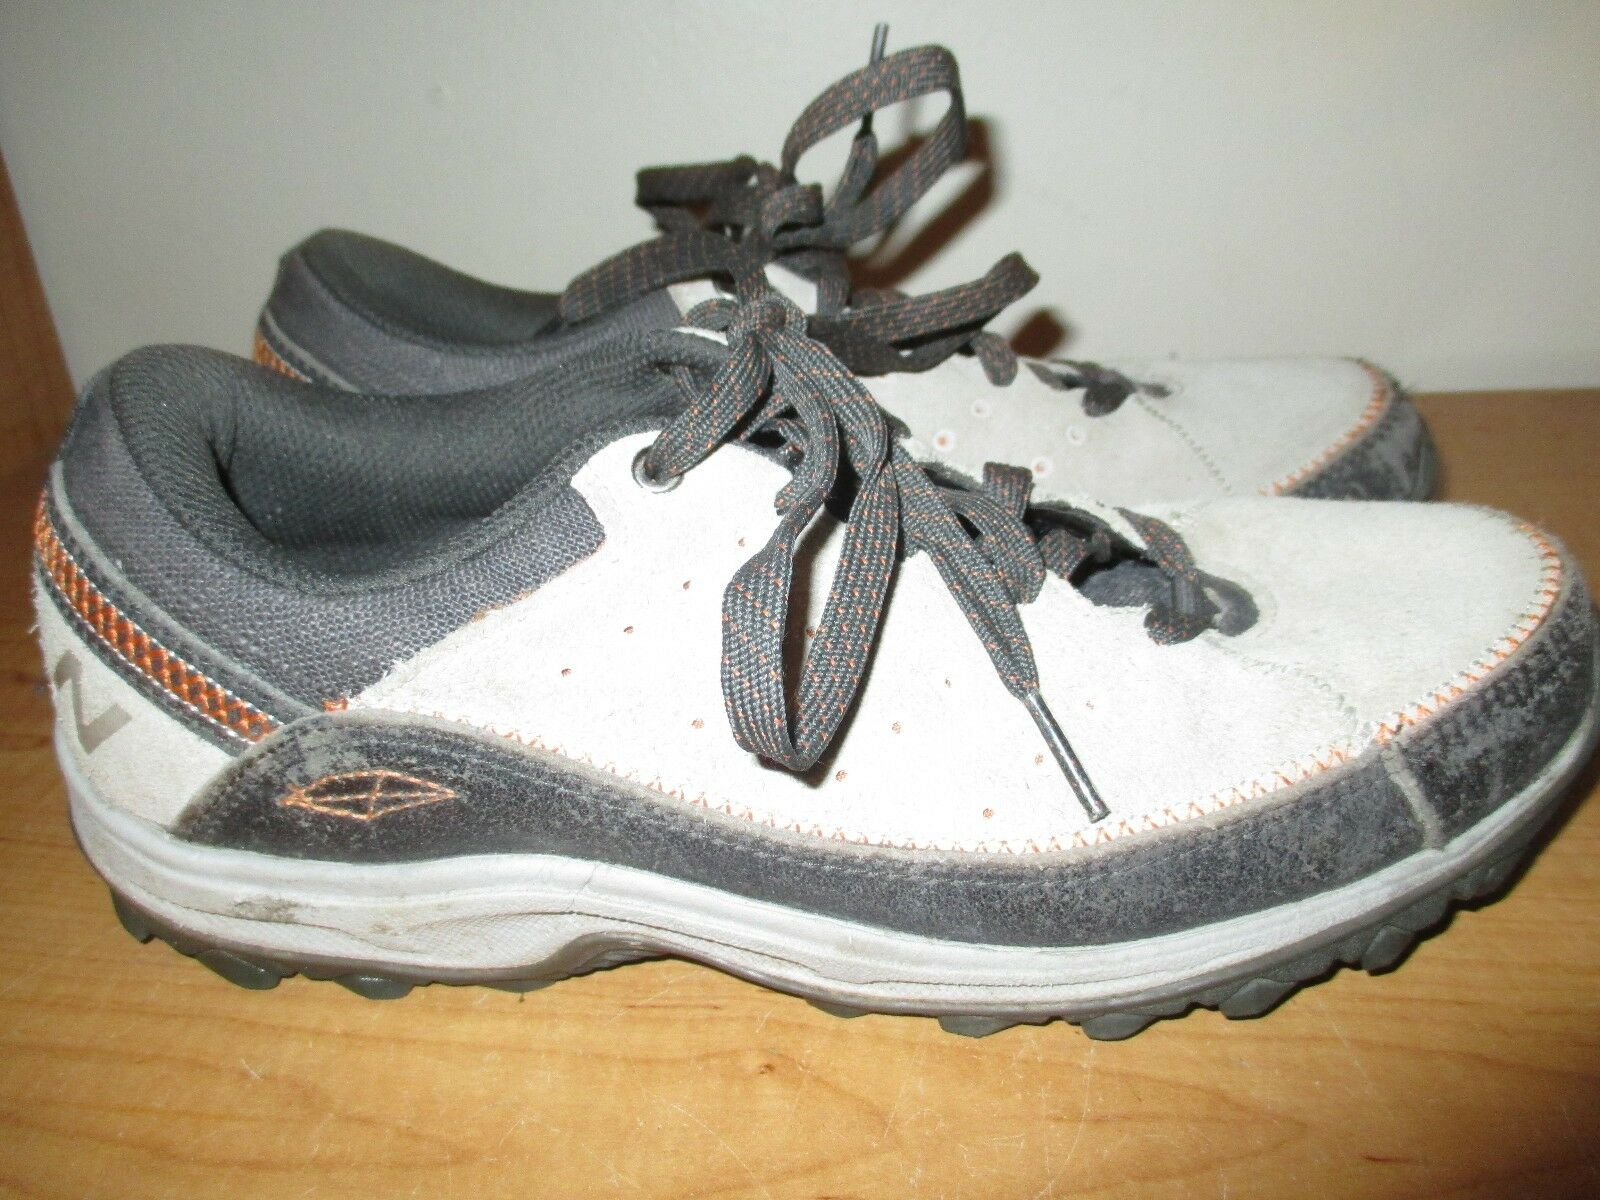 New Balance Women's Size 8.5 Suede Trail Walk Athletic Shoes WW610GR- Super Nice